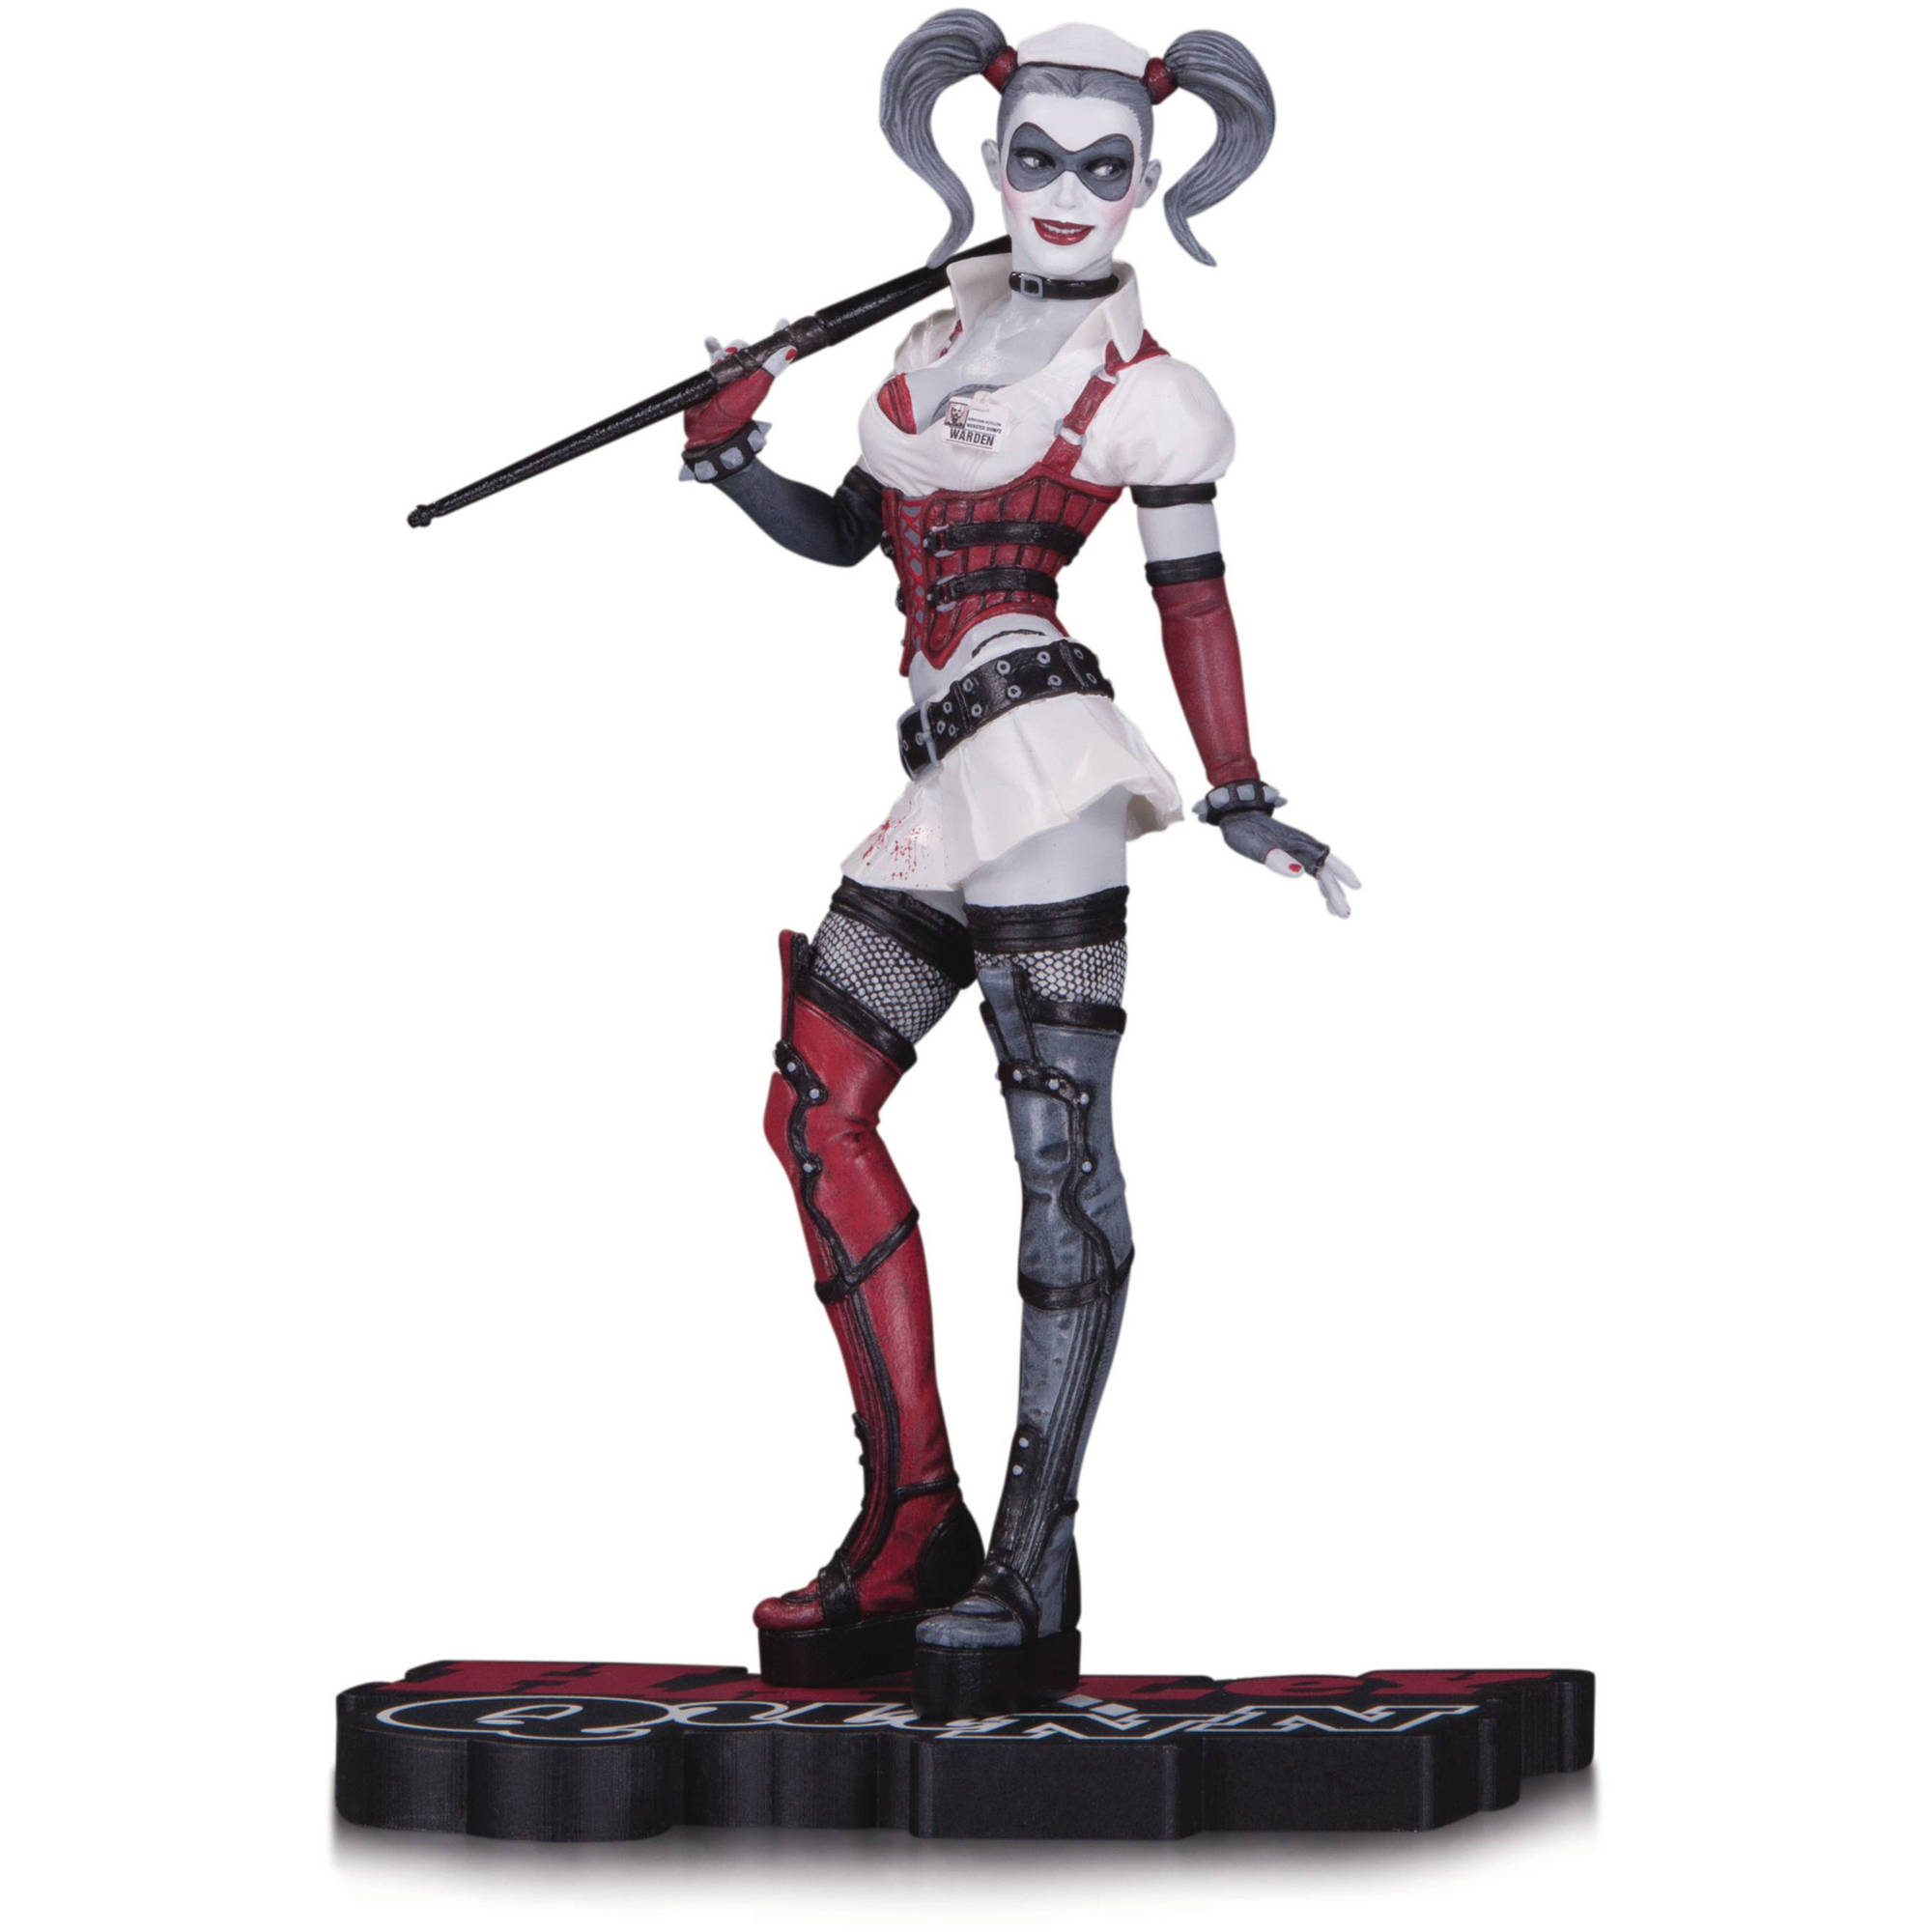 DC Comics Harley Quinn Red White and Black Arkham Asylum Statue by DC COMICS